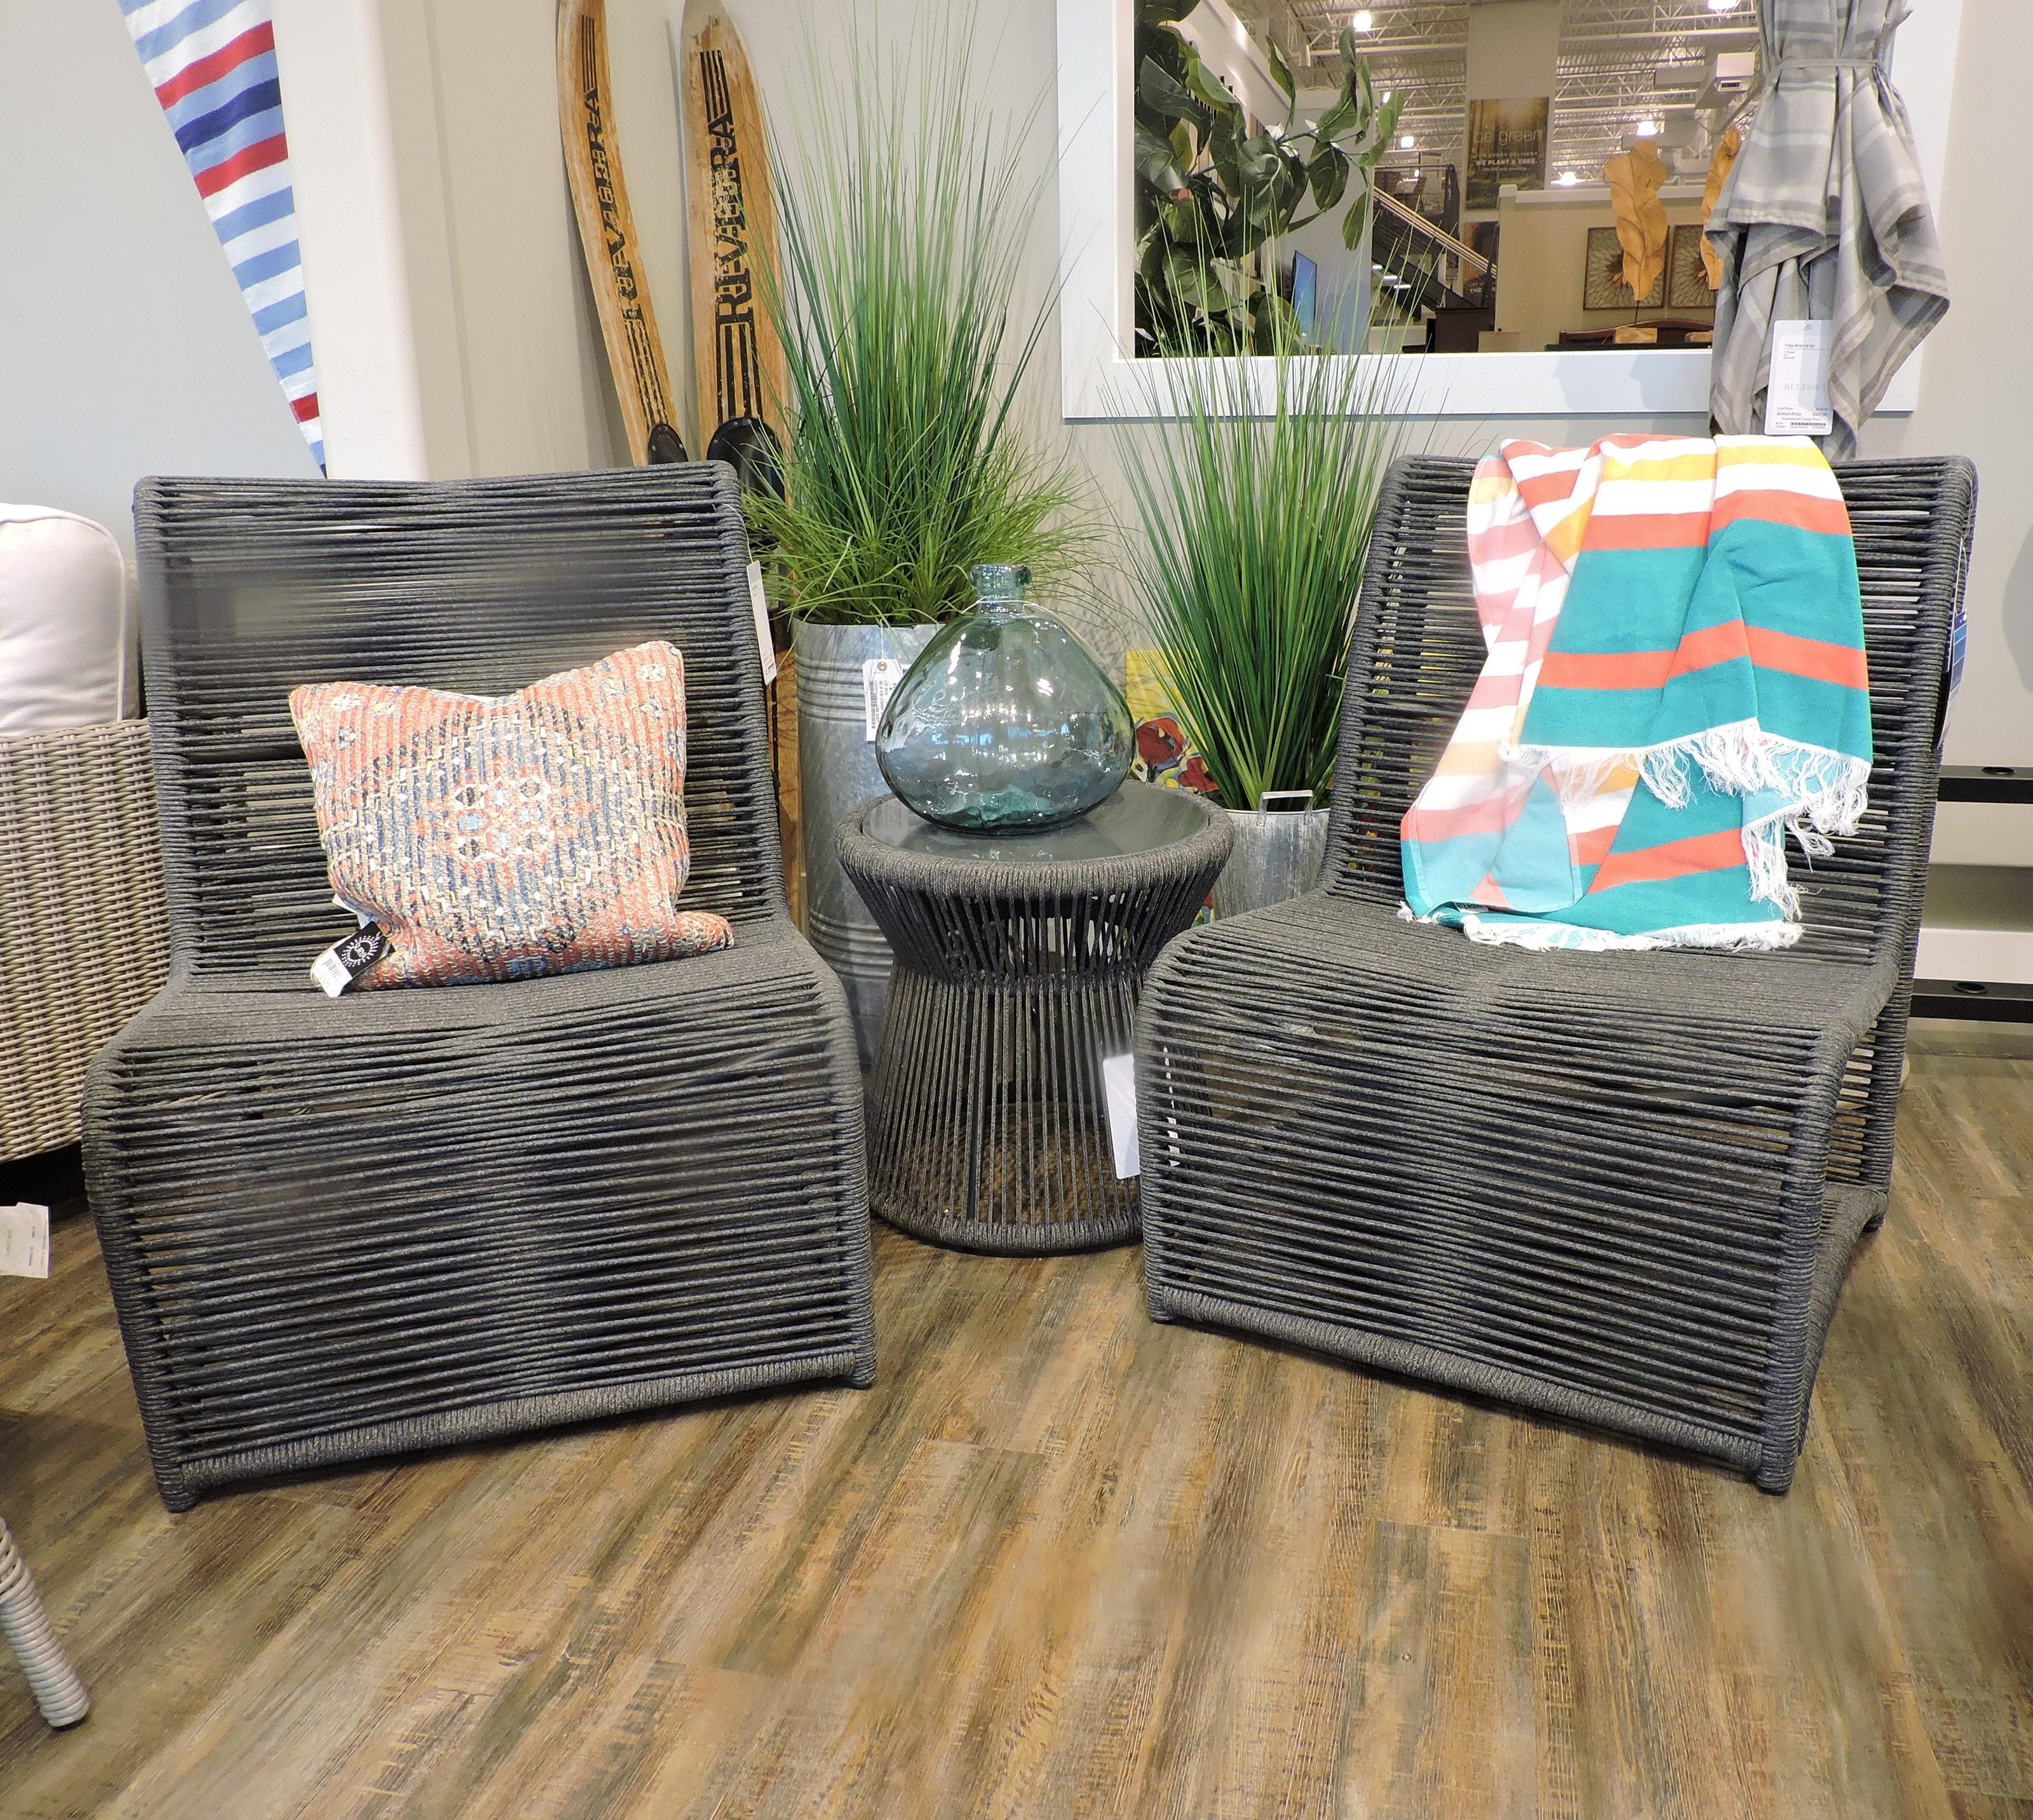 Clearance 3 Piece Outdoor Conversation Set by Sunset West at Belfort Furniture